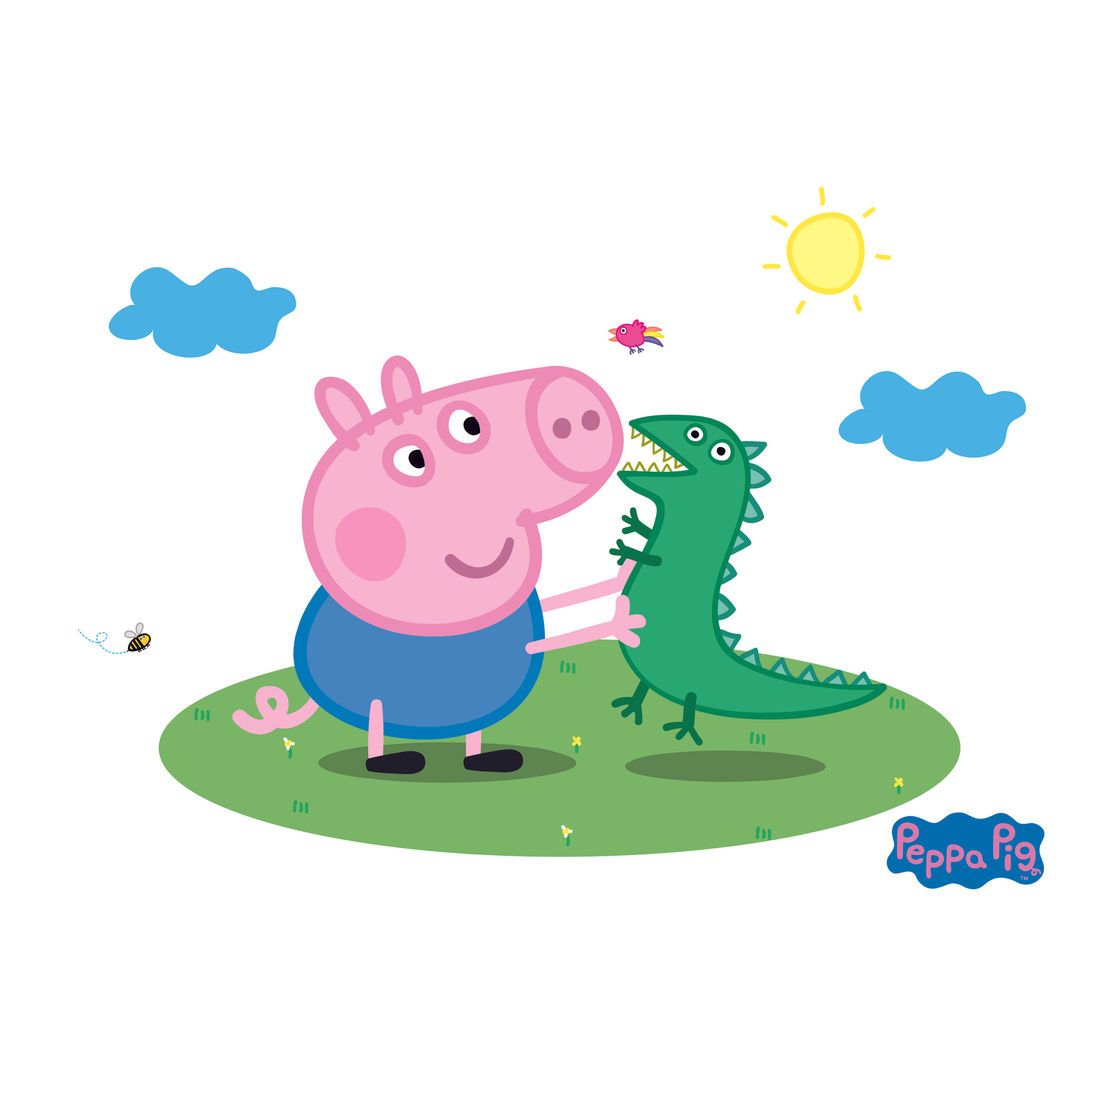 Peppa Pig Captain George with Mr.Dinosaur